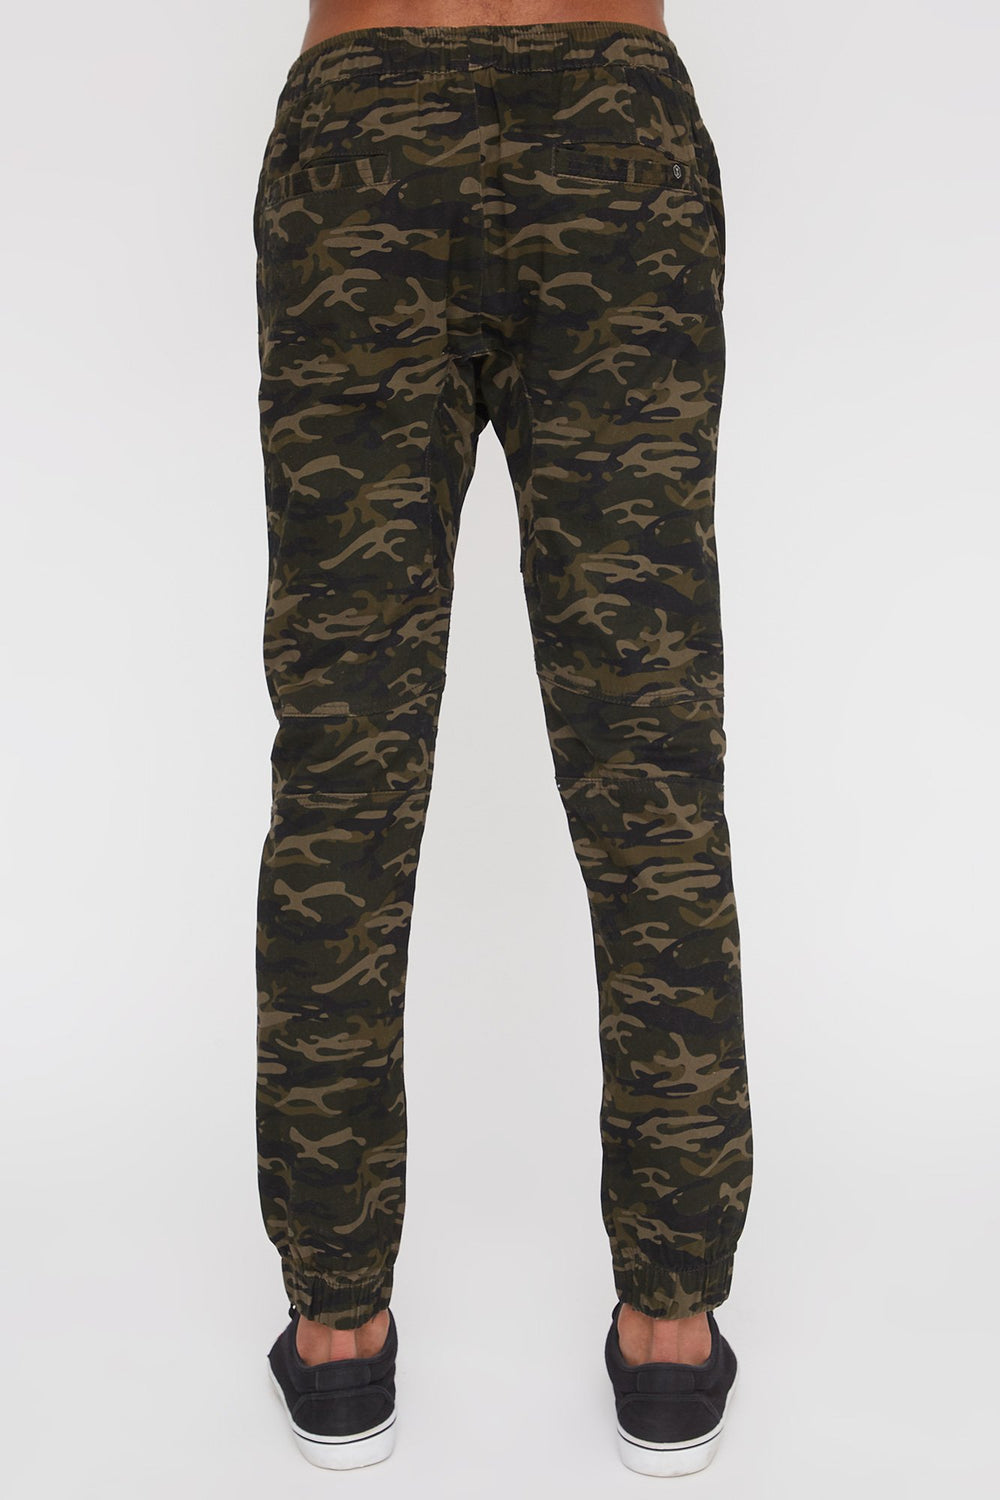 West49 Mens Camo Moto Jogger Camouflage